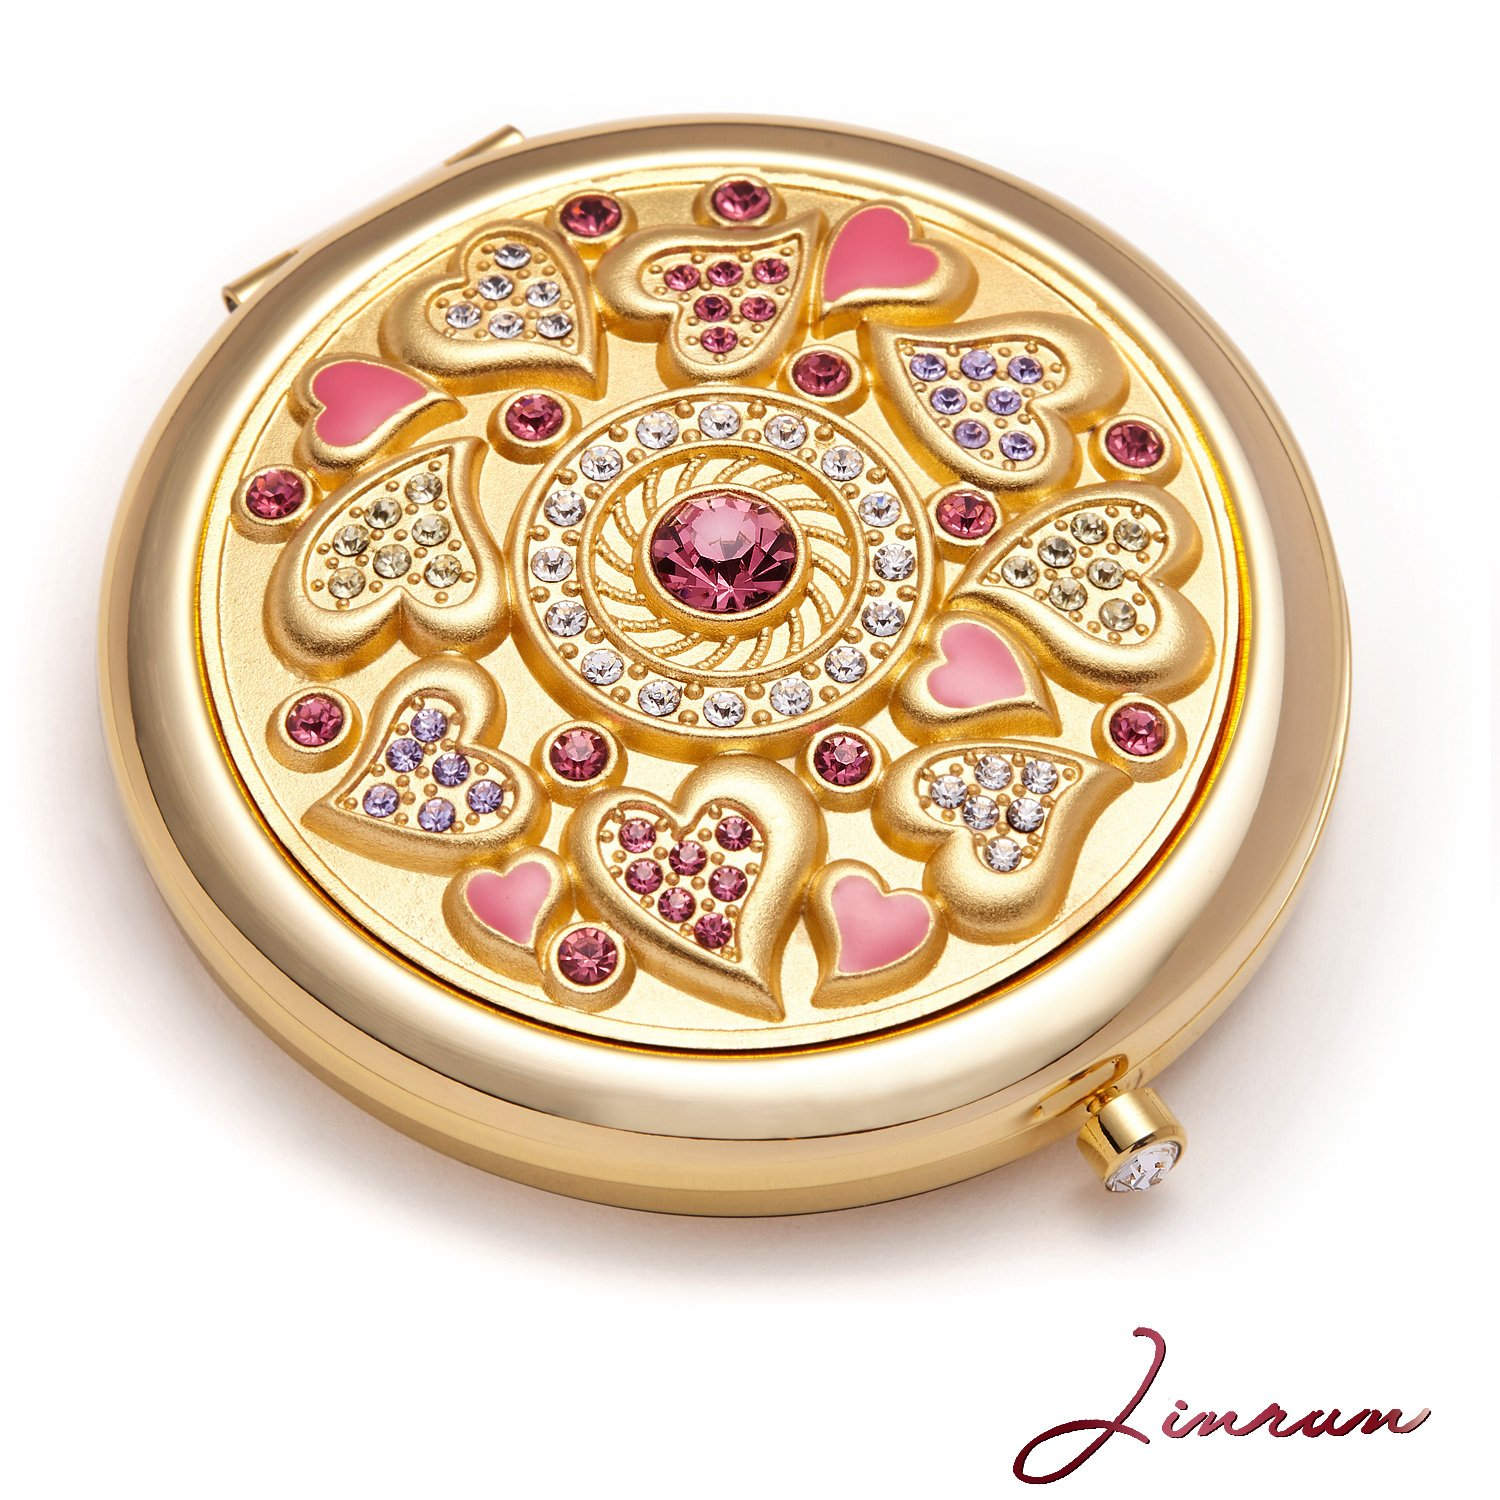 Butterfly Gifts For Girls /24k Gold Electroplate Makeup Mirror by Jinvun: Ultimate Luxury Round Vanity Mirror w/Diamonds/ Sturdy Travel Purse Compact Cosmetic Mirror/Folding Magnifying Beauty Mirror